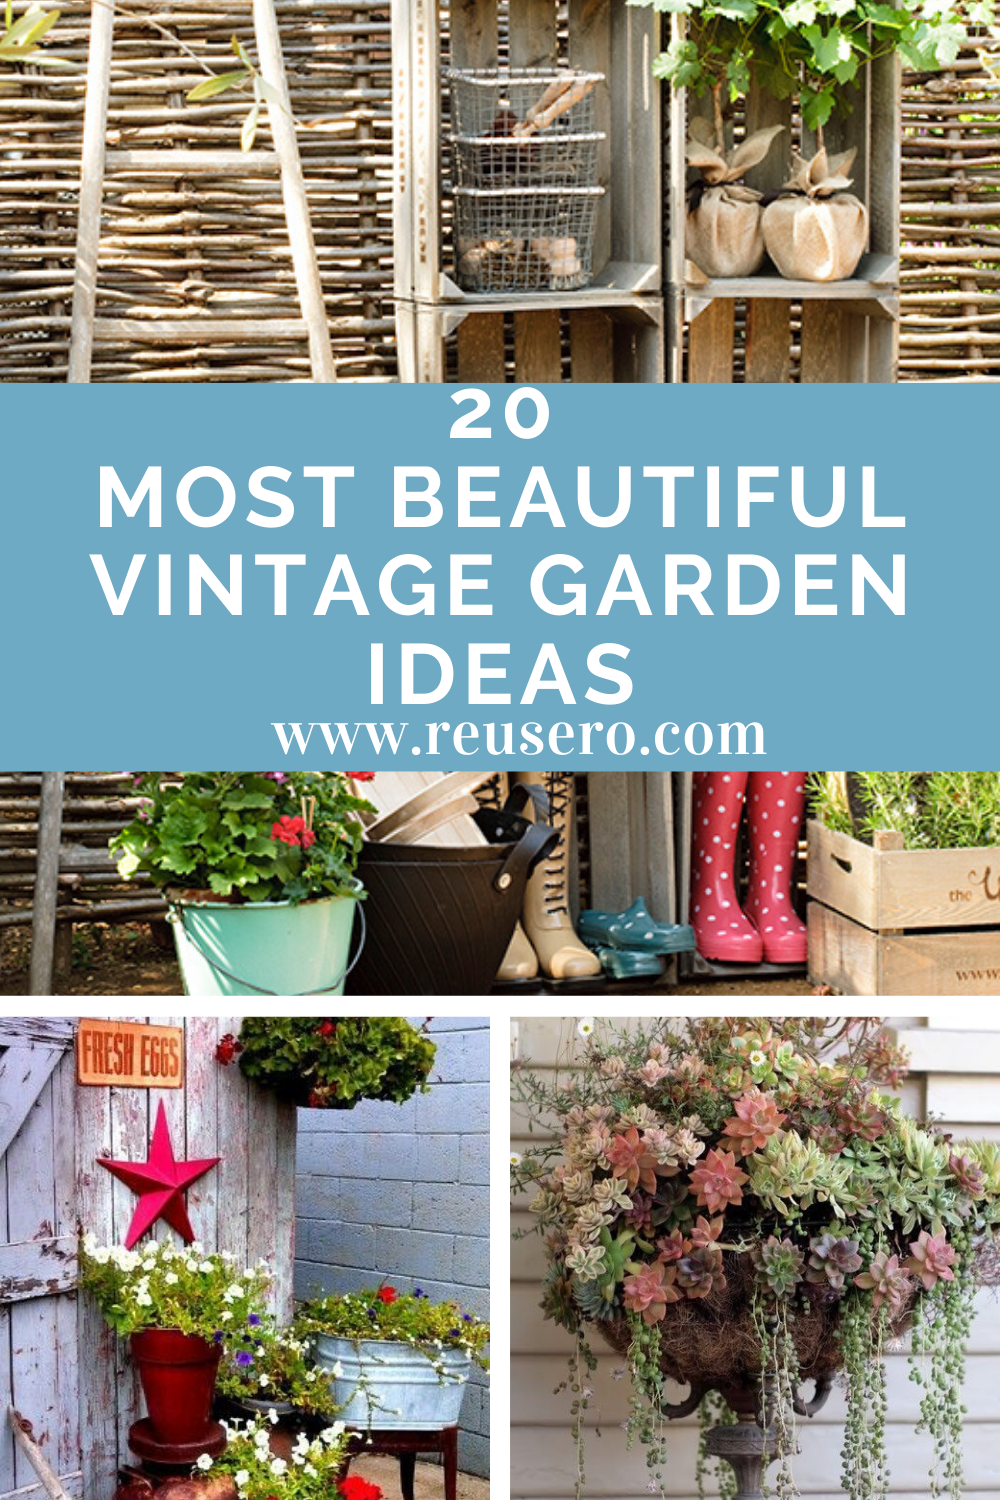 Upcycle Projects And Ideas For Garden Diy Upcycled Household Items And Junk Into Furniture Decor Vintage Garden Diy Garden Japanese Garden Tools